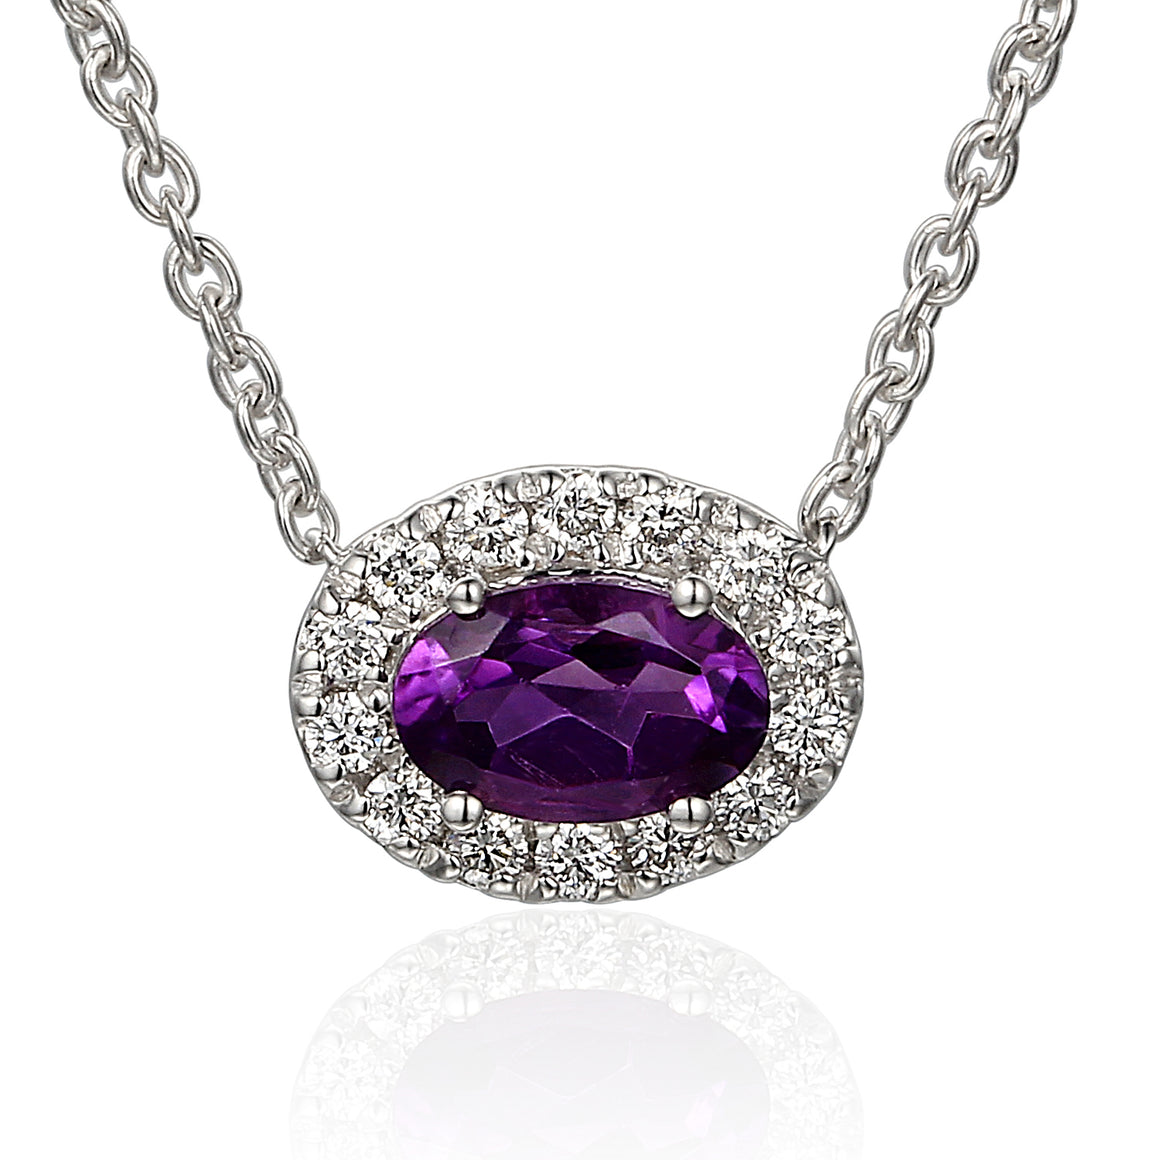 18ct White Gold Oval Amethyst and Diamond Pendant on Chain